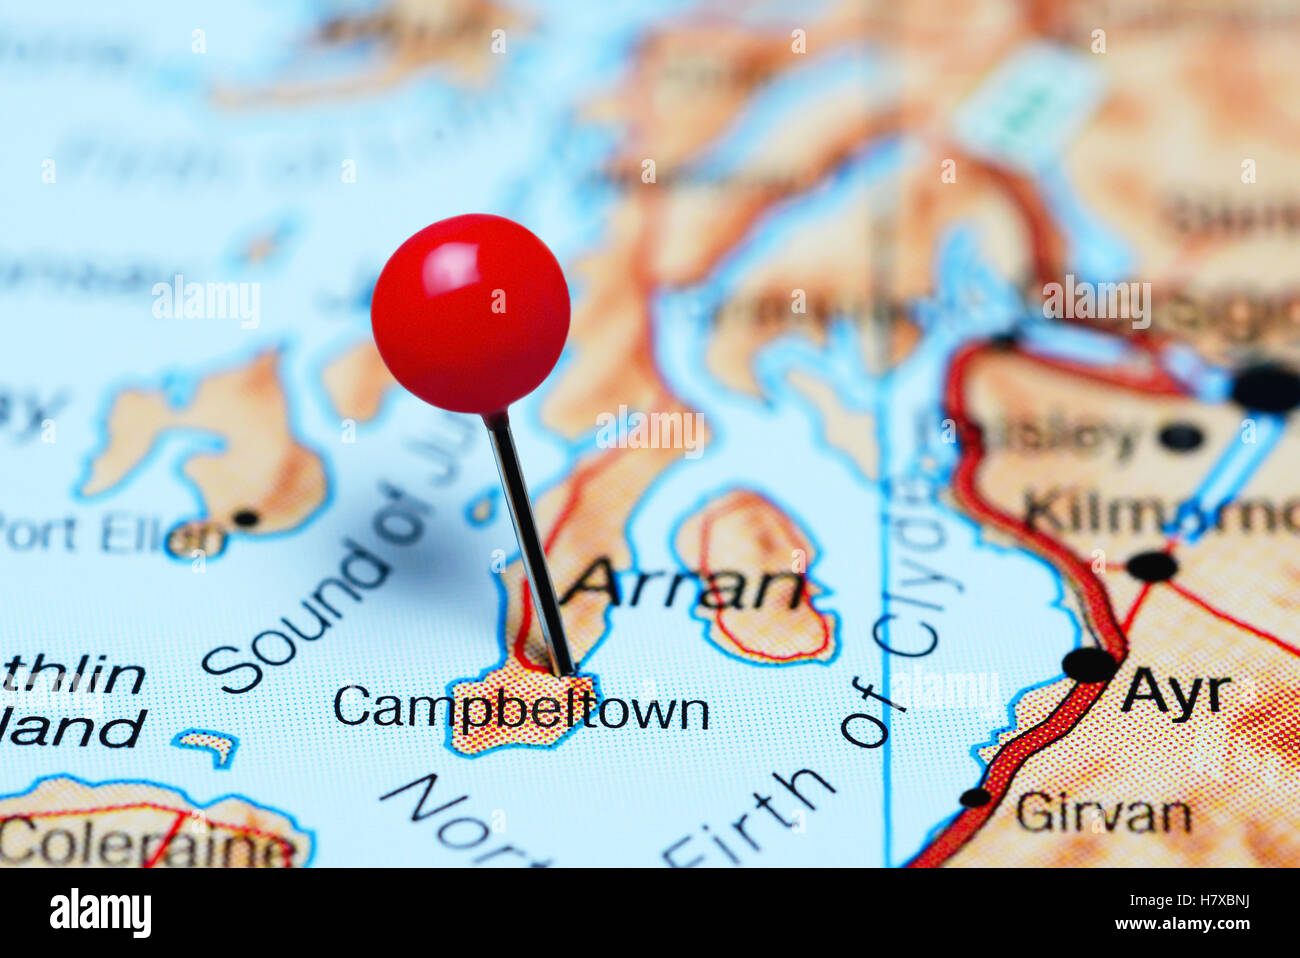 Campbeltown Scotland Map.Campbeltown Pinned On A Map Of Scotland Stock Photo 125355150 Alamy